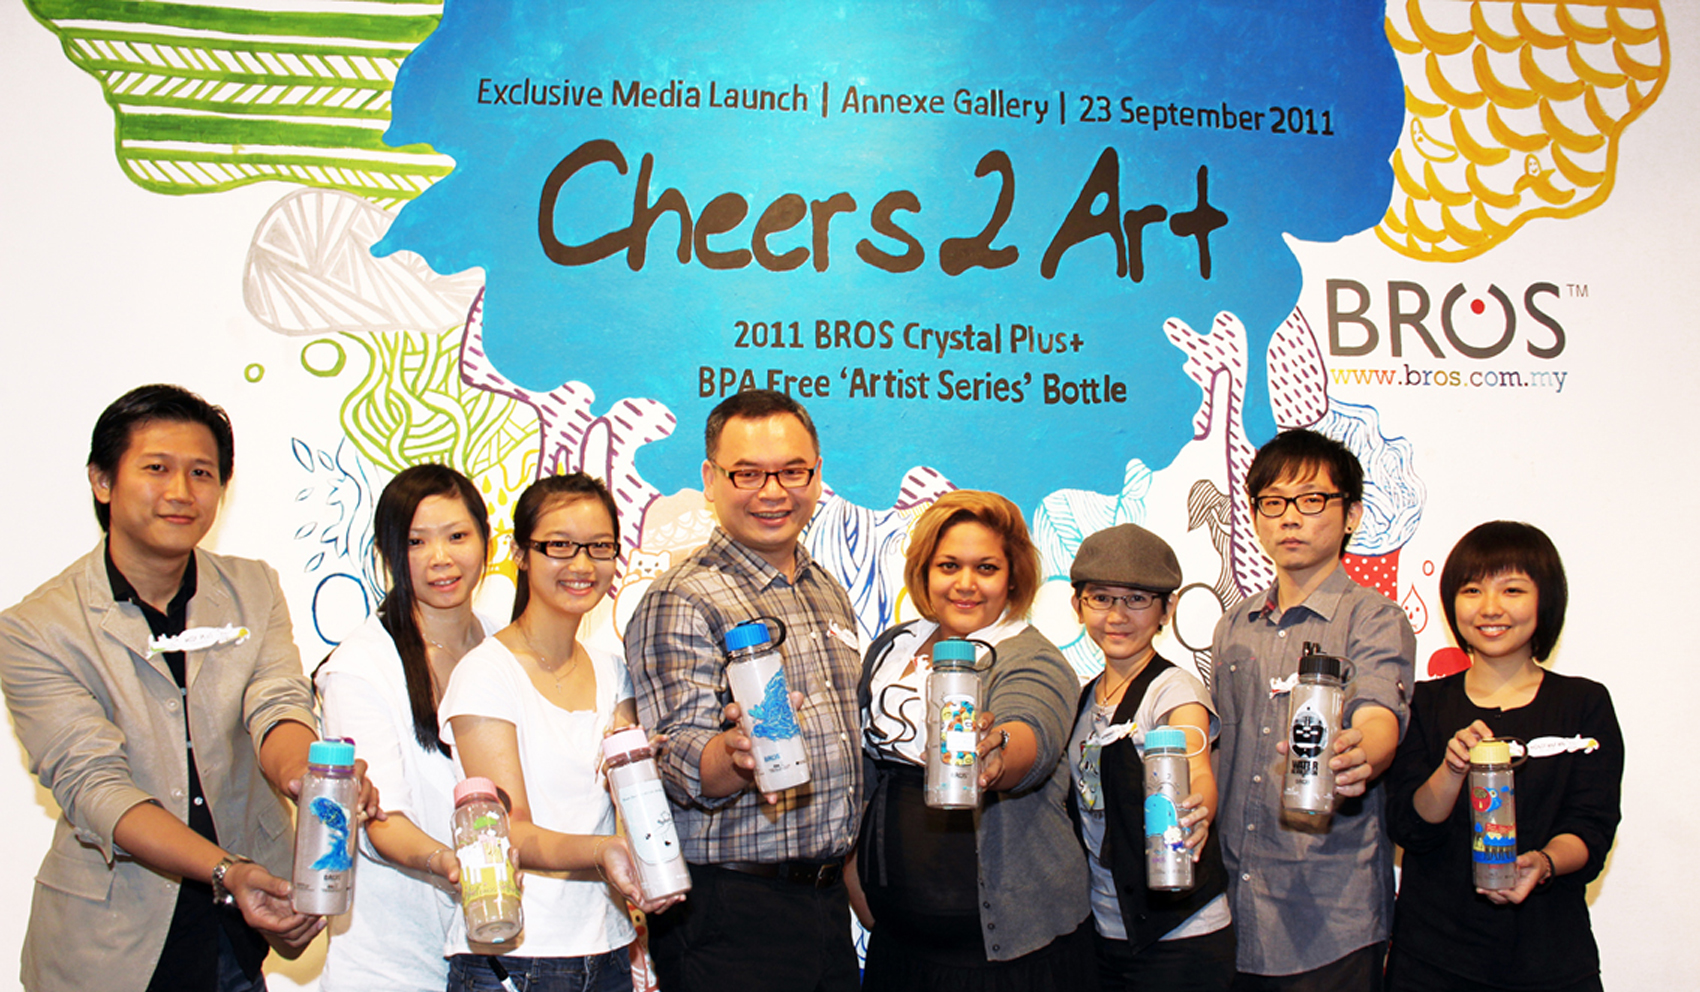 20160317_HIGHLIGHT_NEWS_BANNER_BERNAMA-TV_CHEERS-2-ART_MEDIA-LAUNCH